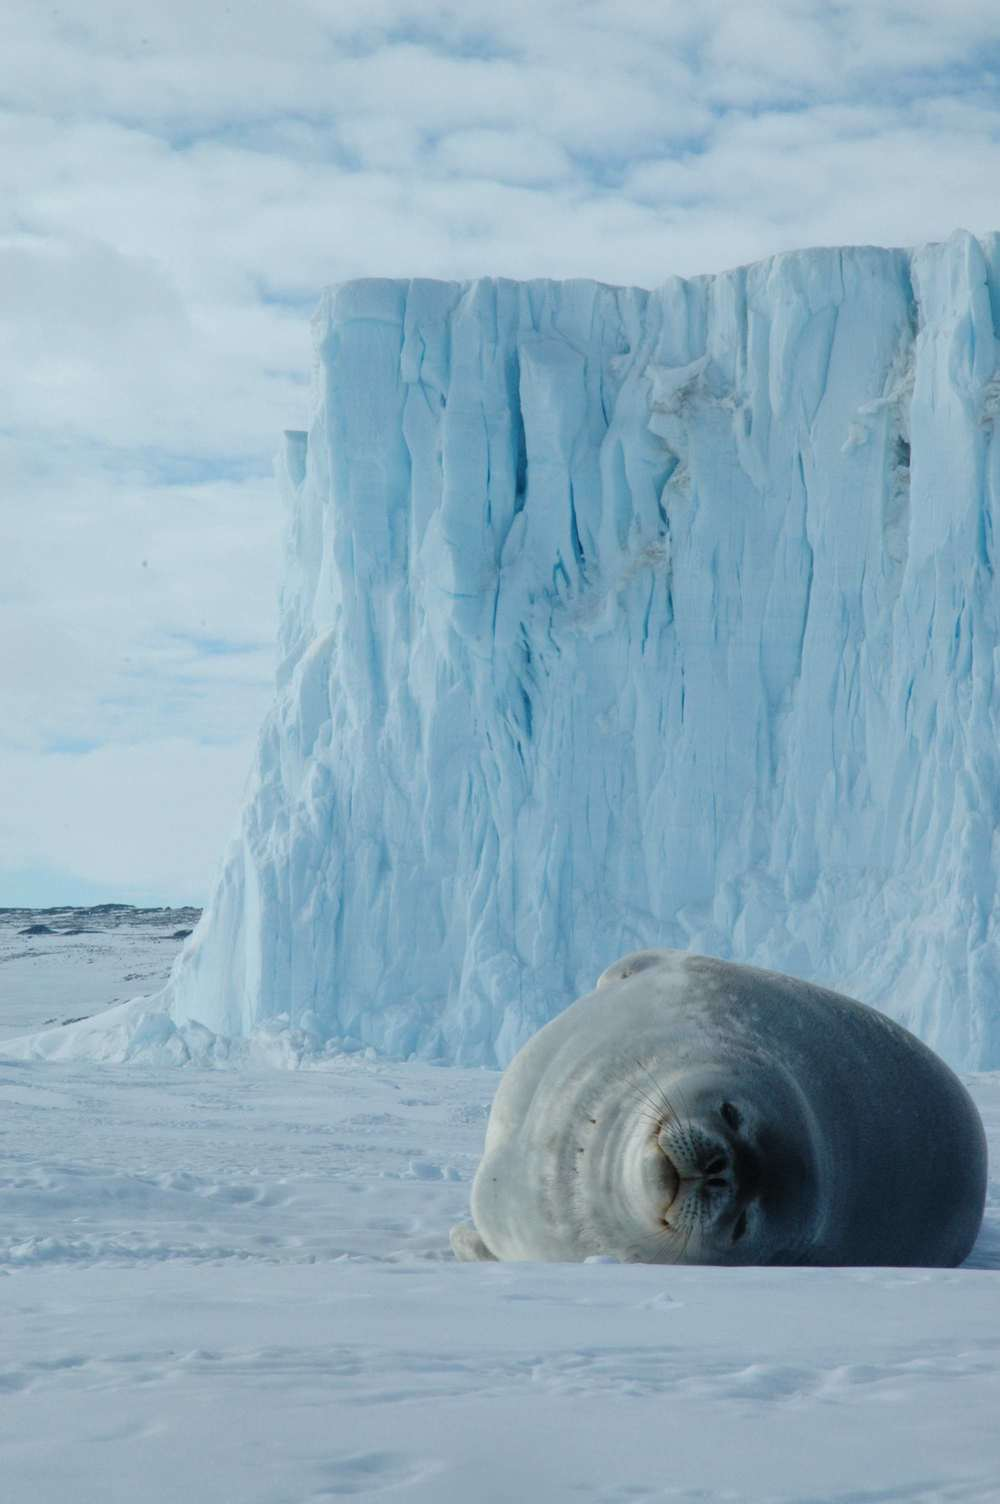 A Weddell seal chillaxing on the sea ice in front of the Barne Glacier.